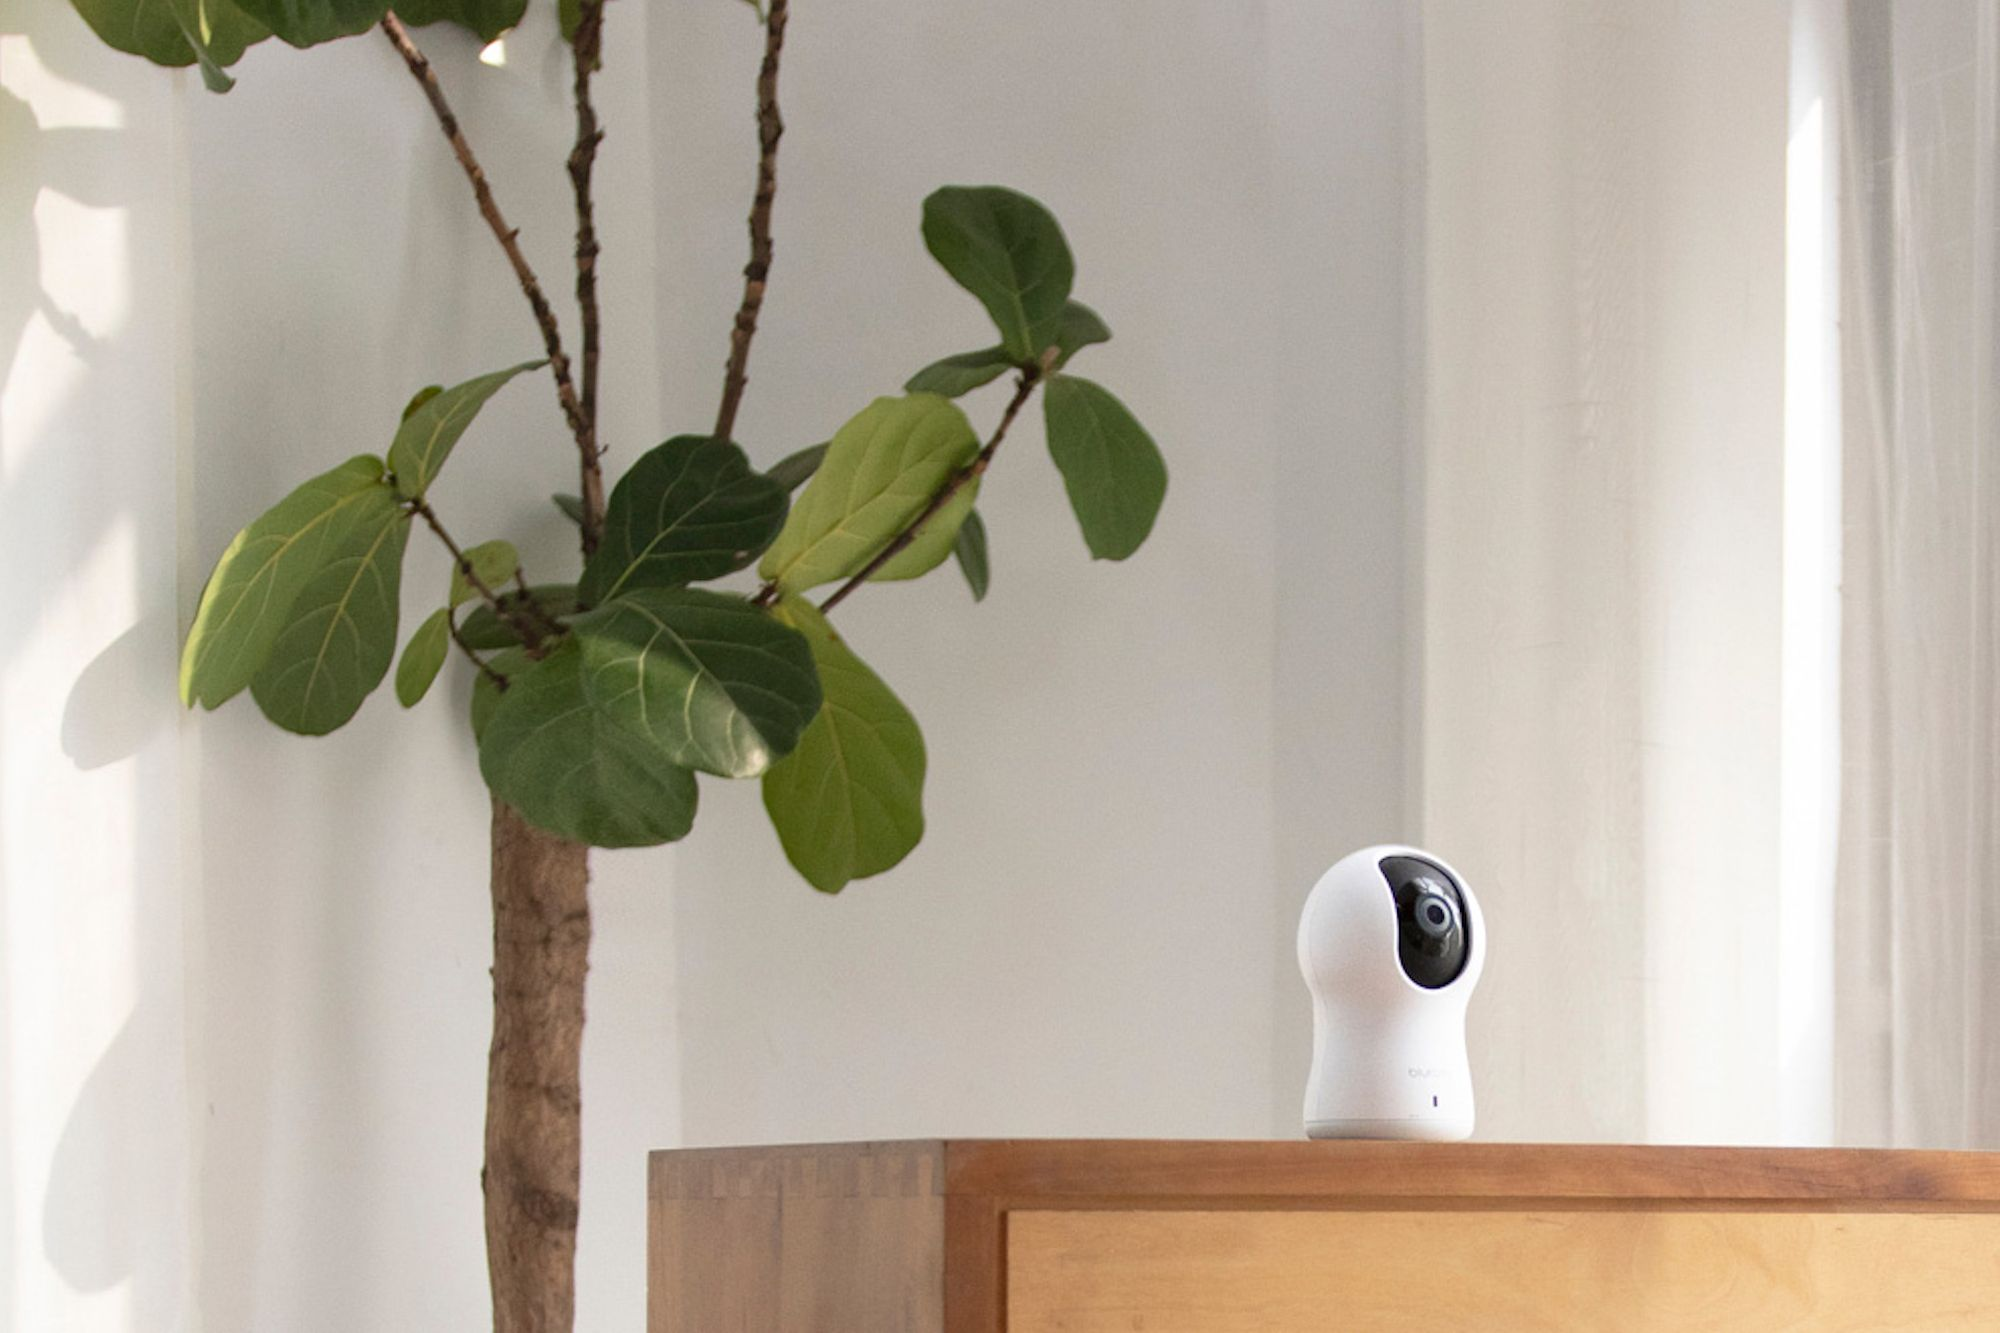 This Home or Office Smart Camera is Less Than $45 Today